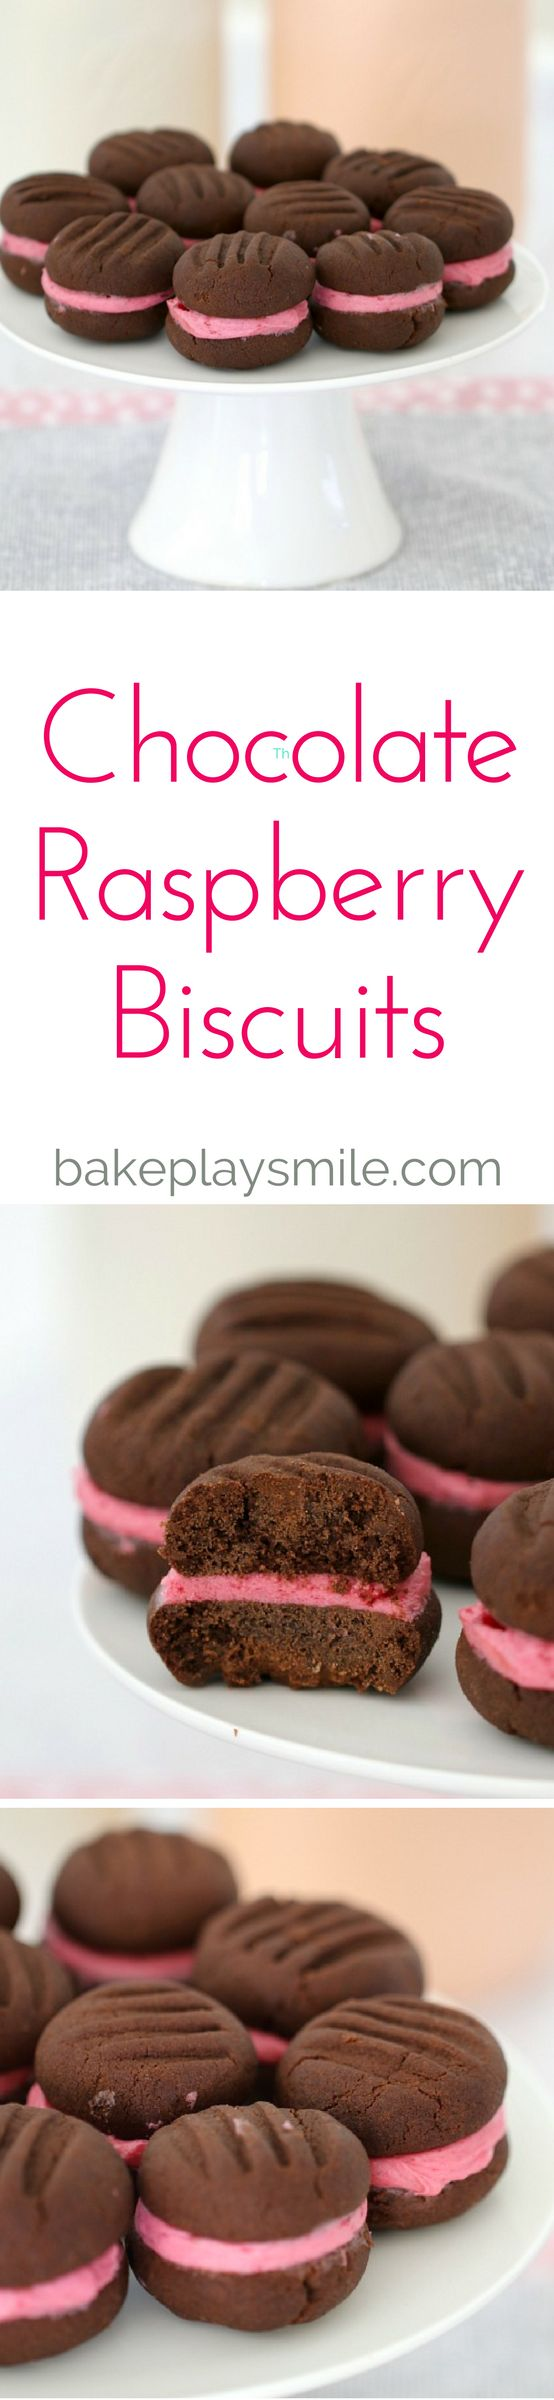 chocolate biscuits and a drool-worthy raspberry filling. #chocolate ...